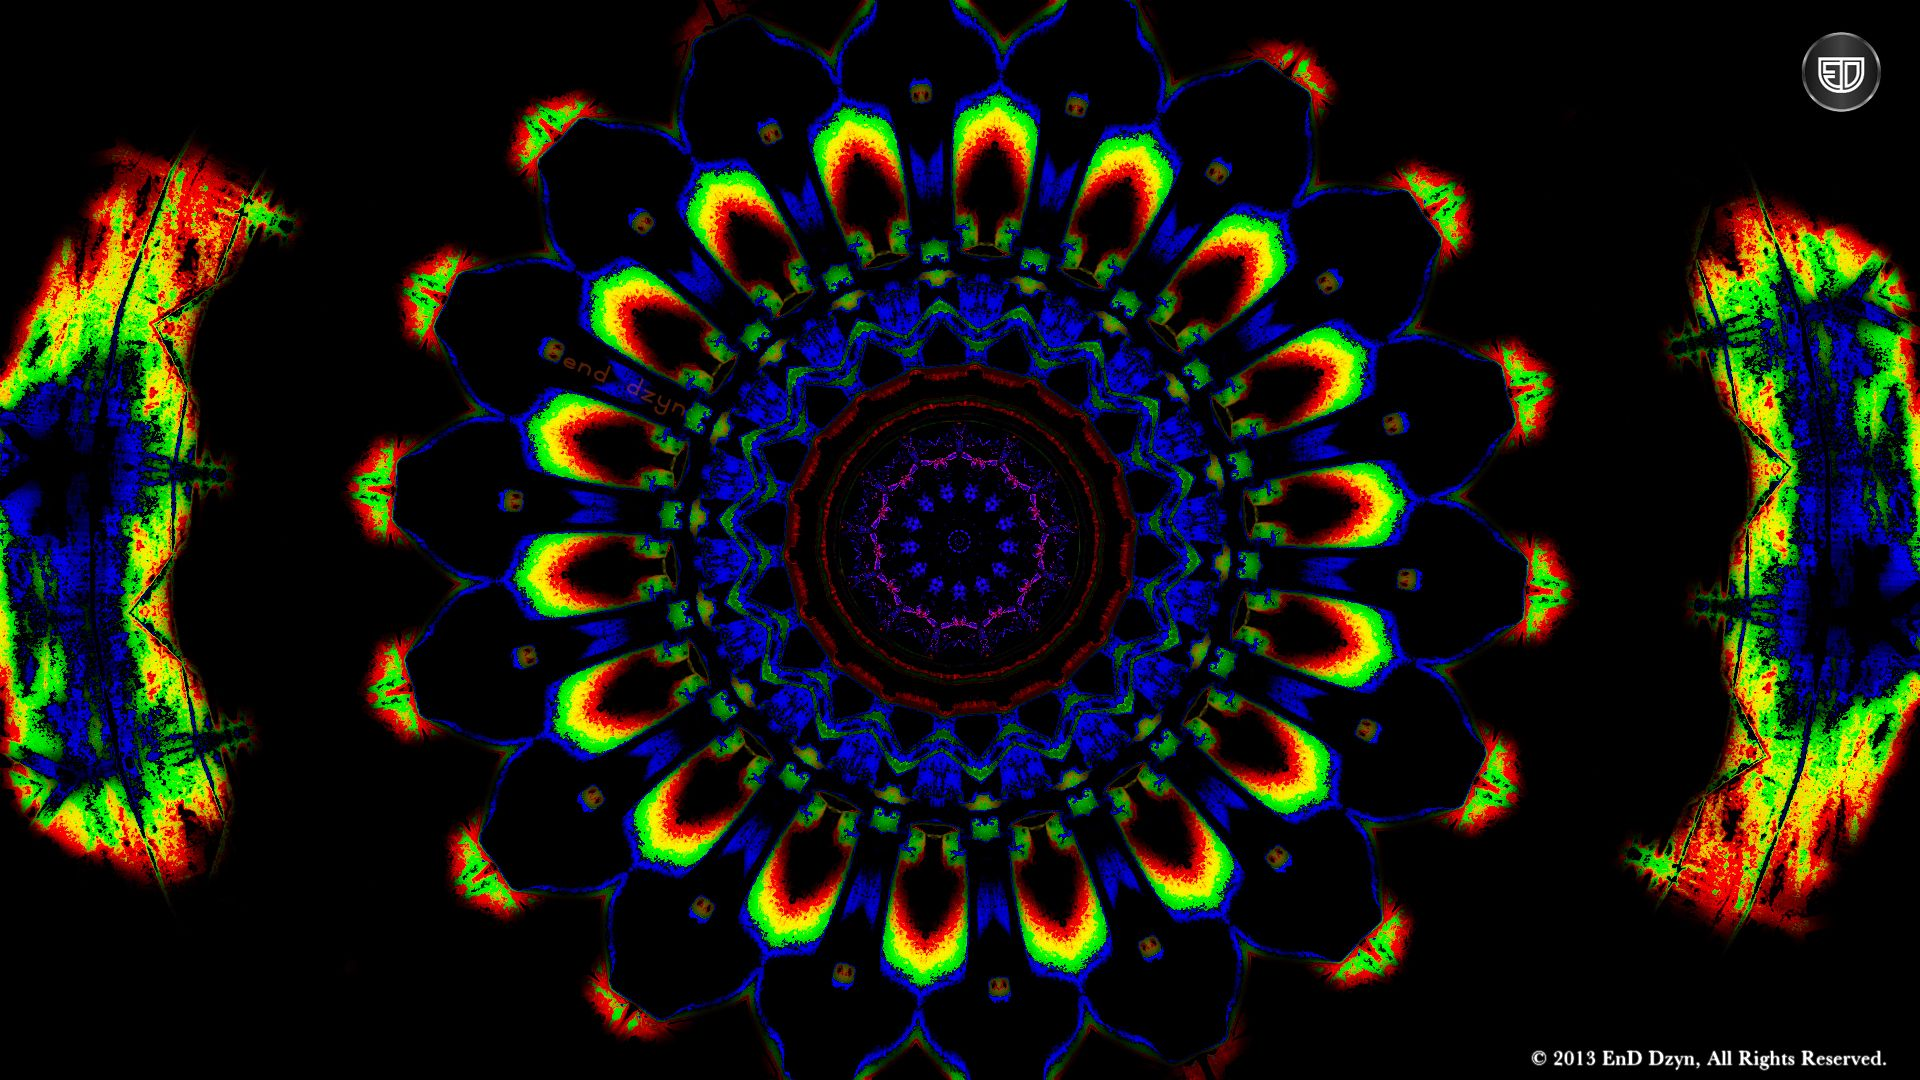 Psychedelic Hd Background Wallpaper Trippy Colorful 3d Live Wallpapers Trippy Pictures Trippy Wallpaper